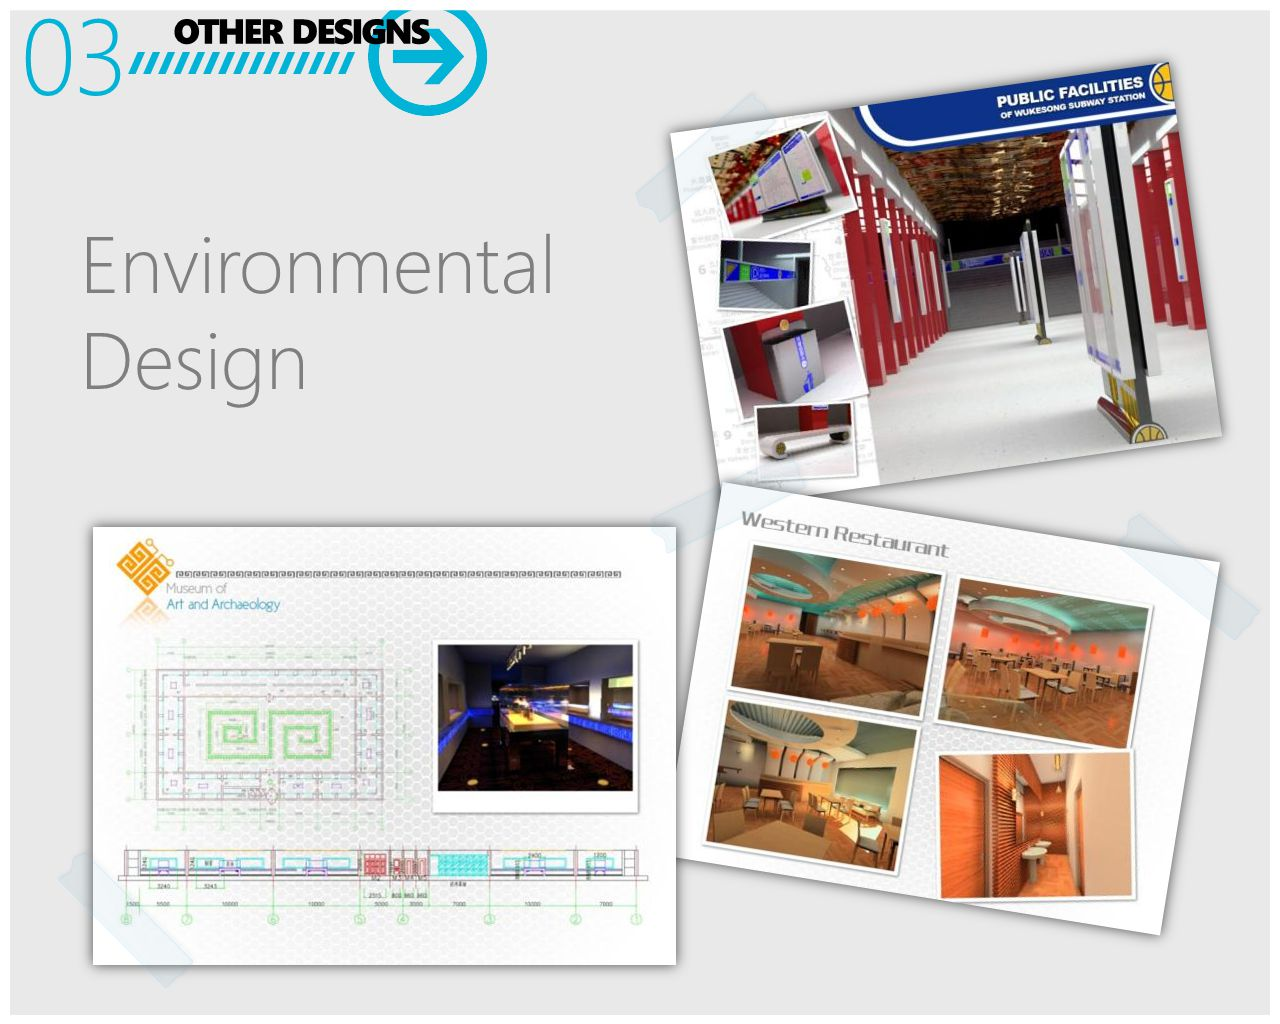 OTHER DESIGNS 03 Environmental Design